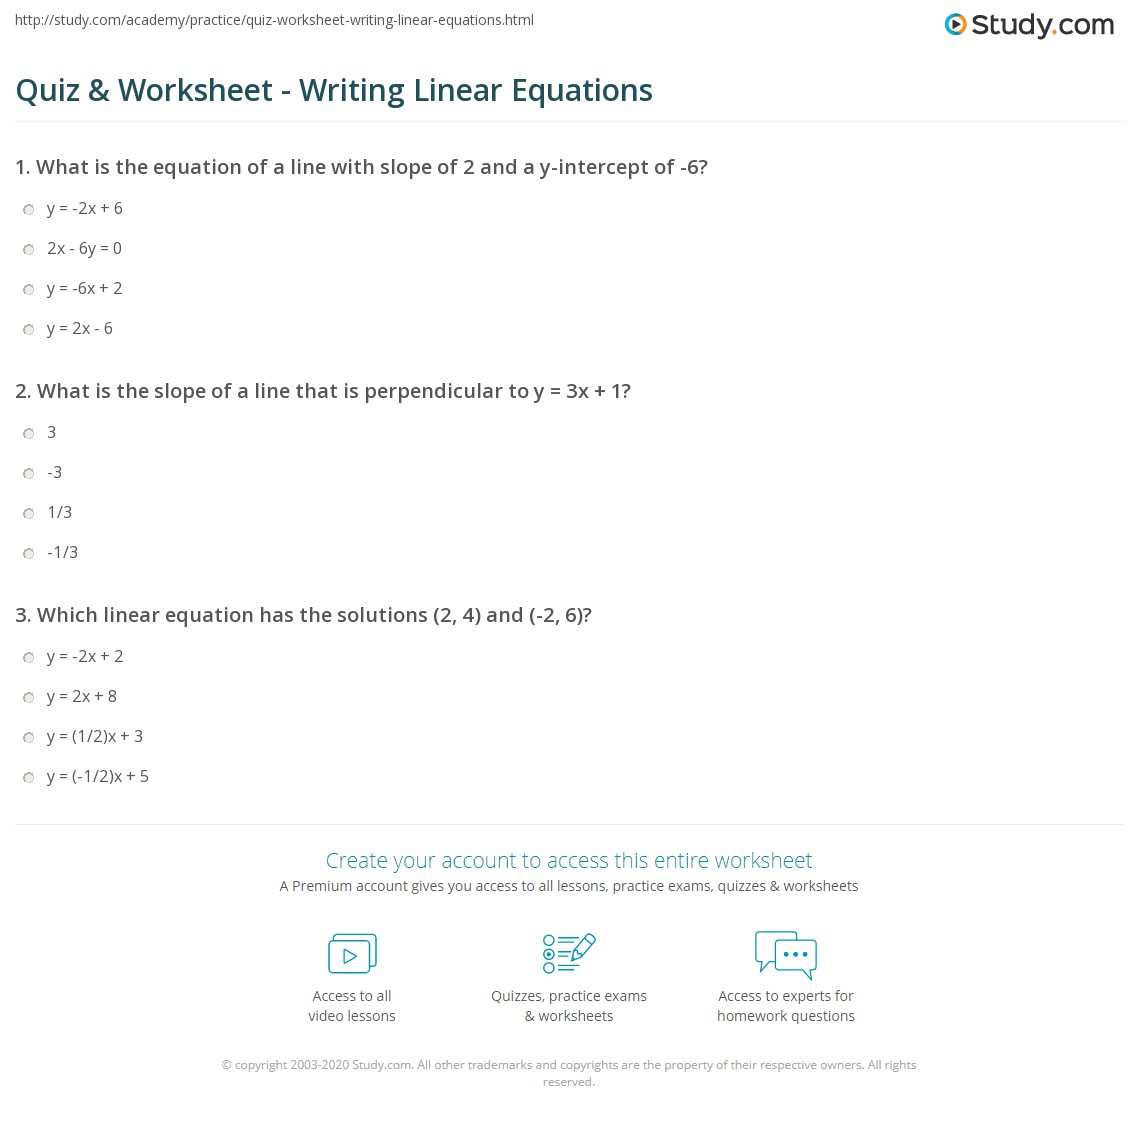 Quiz  Worksheet  Writing Linear Equations  Study.com